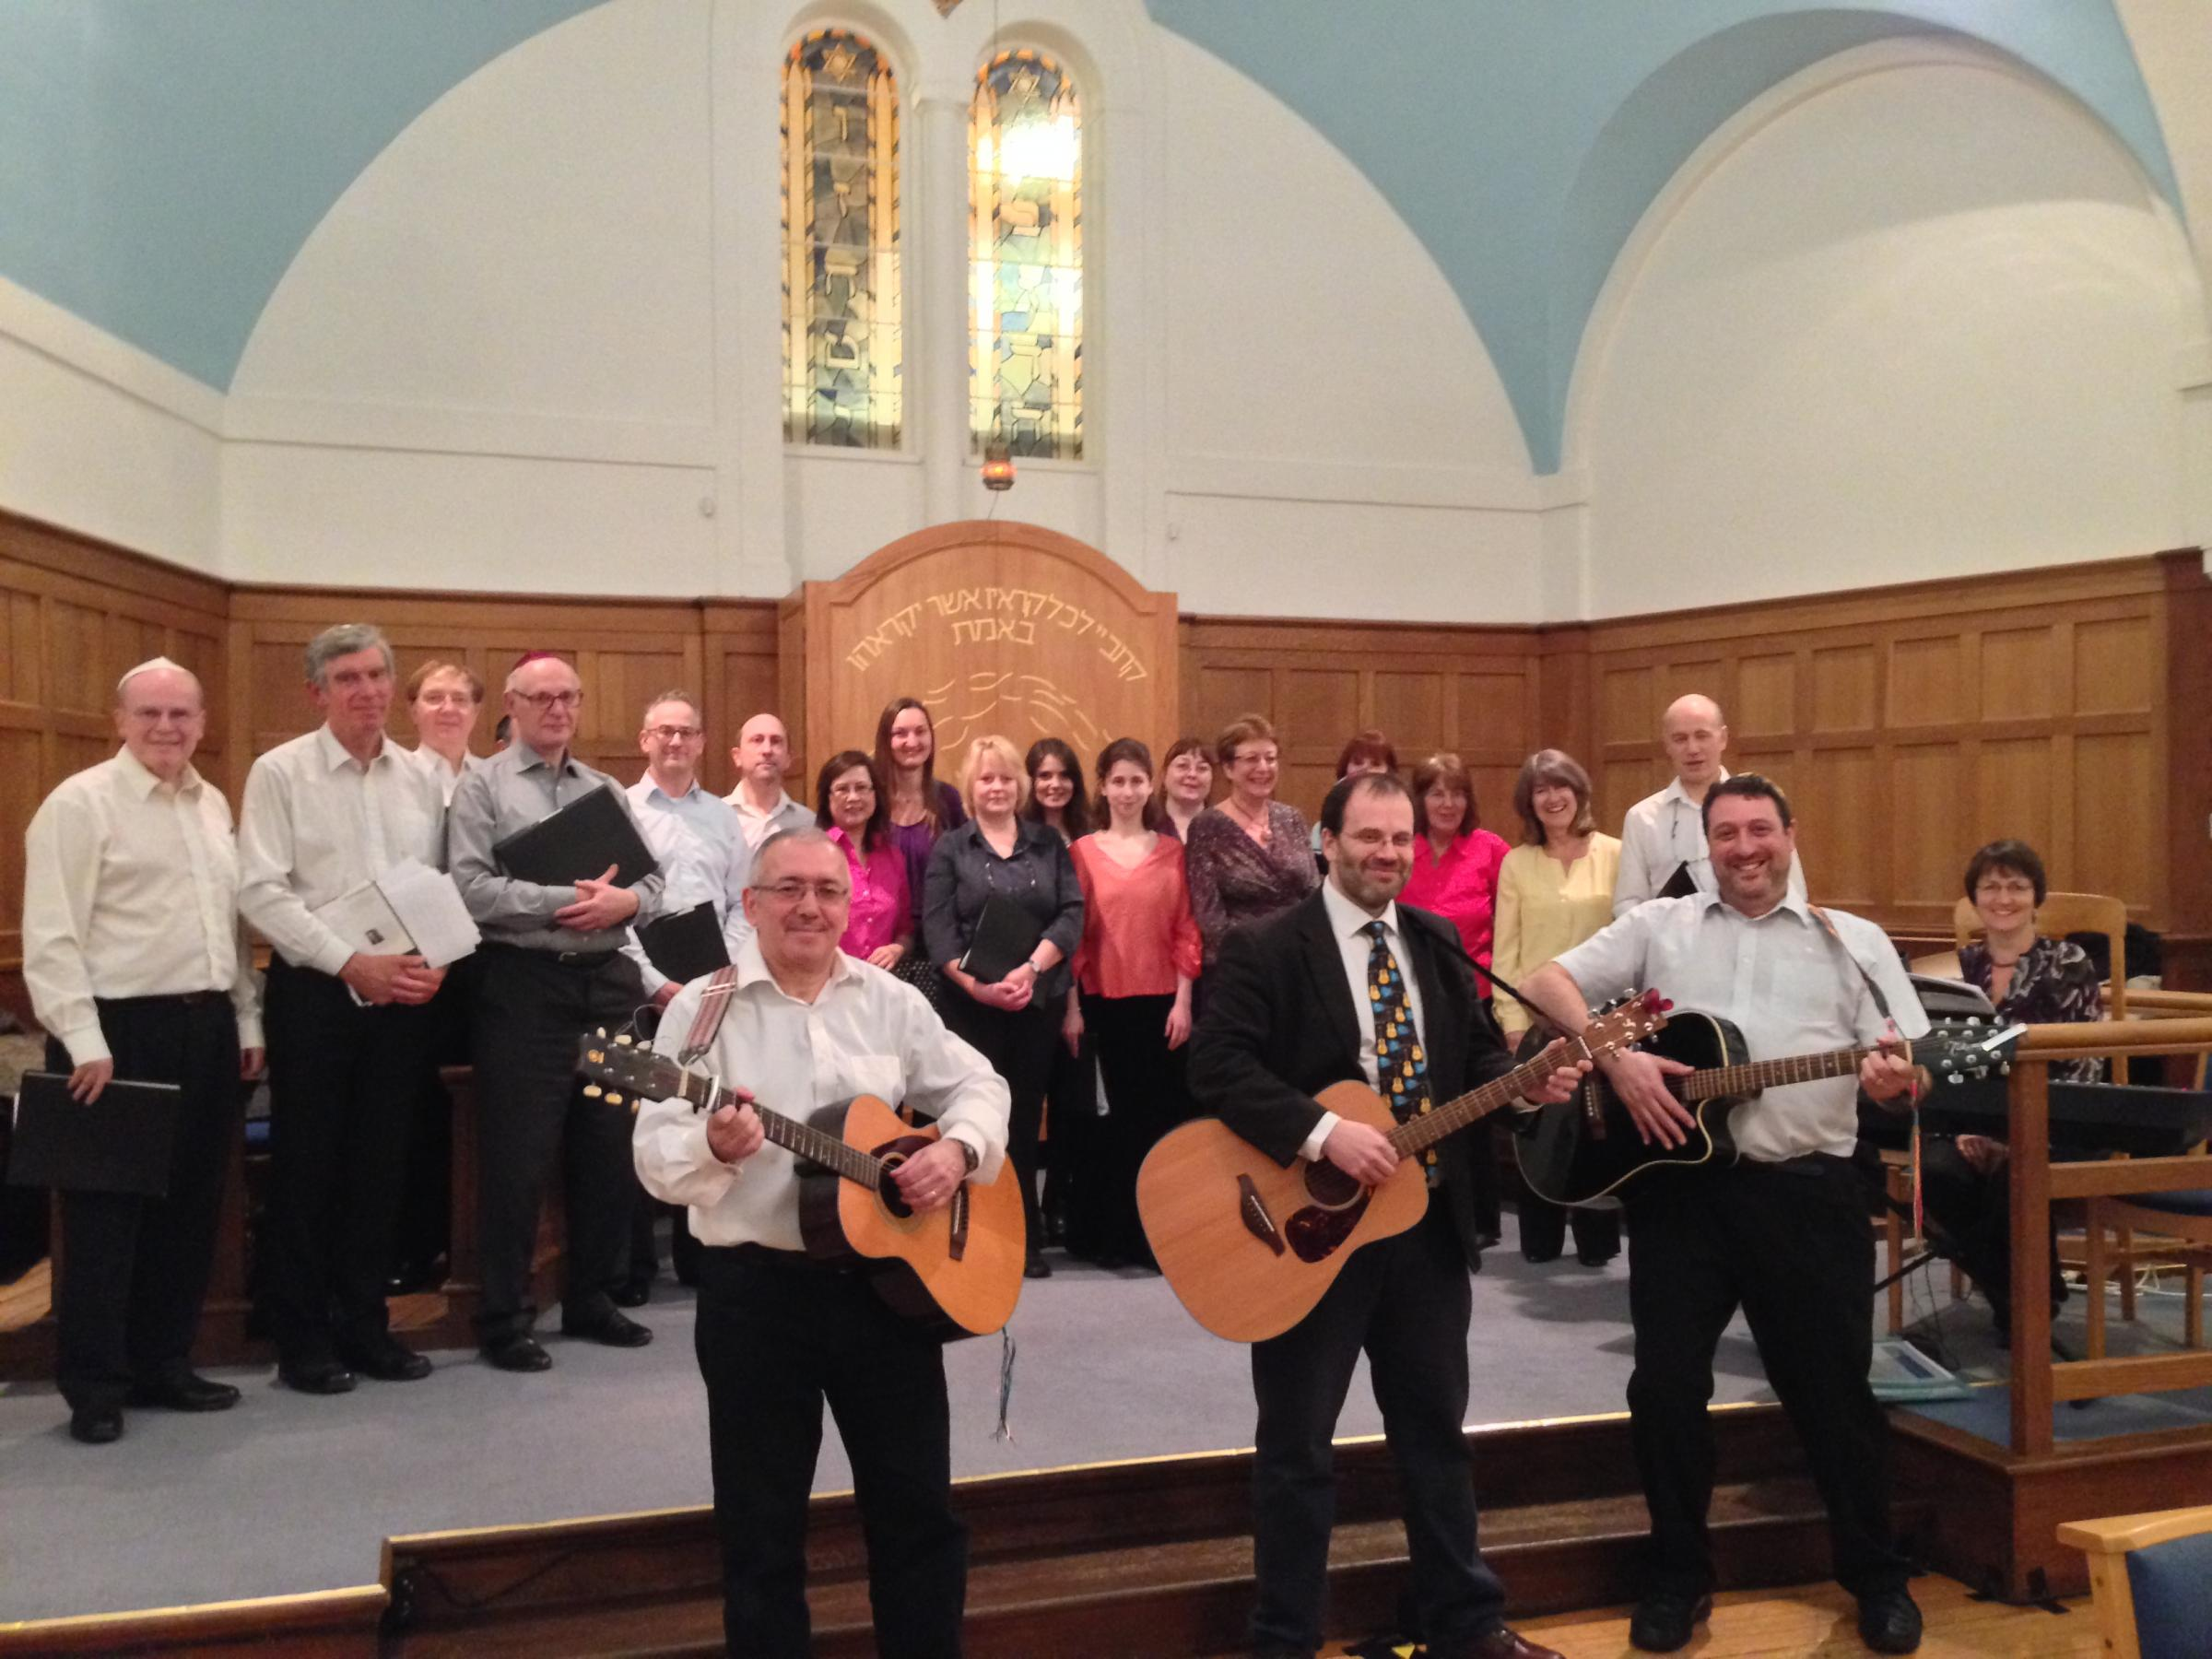 Combined choir helps cement relations between Jewish and Christian singers